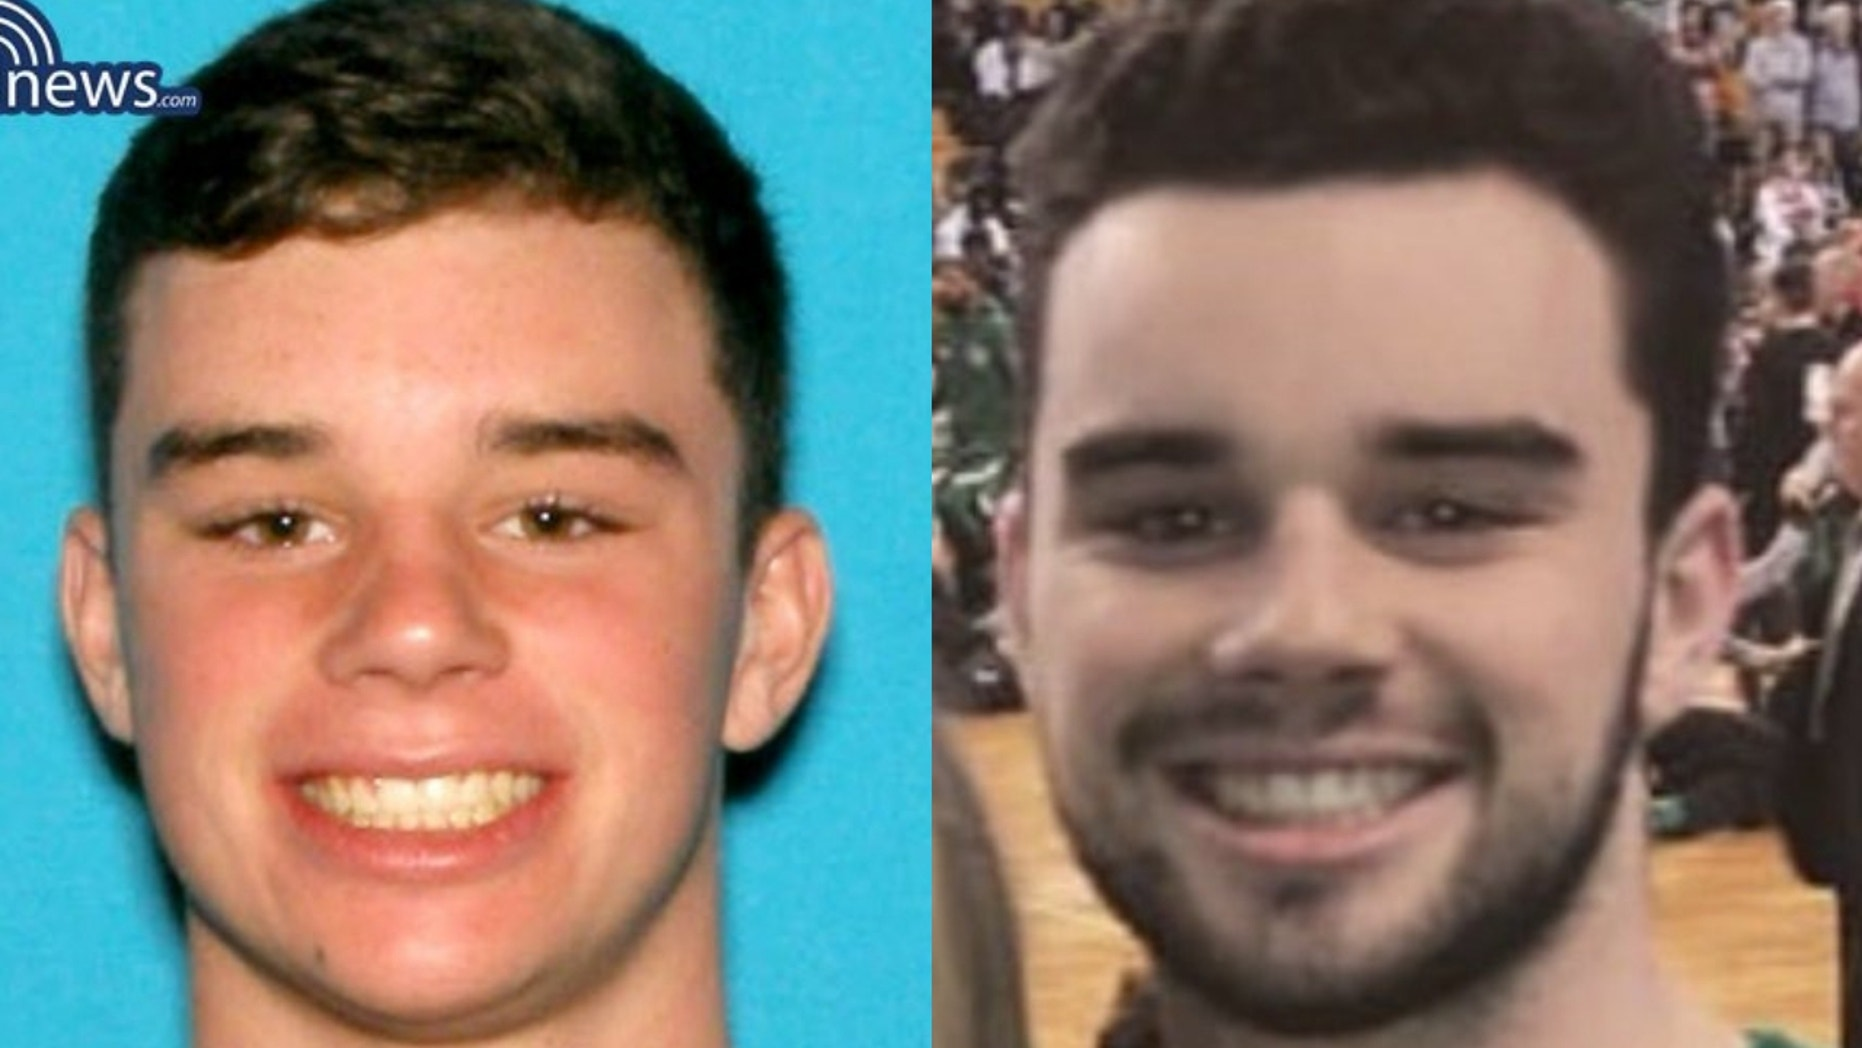 Westlake Legal Group Maximillian-Carbone Body found during search for missing college student in Boston, reports say Katherine Lam fox-news/us/us-regions/northeast/massachusetts fox news fnc/us fnc d97d06f9-57f4-57df-ad80-201b7d2d7724 article